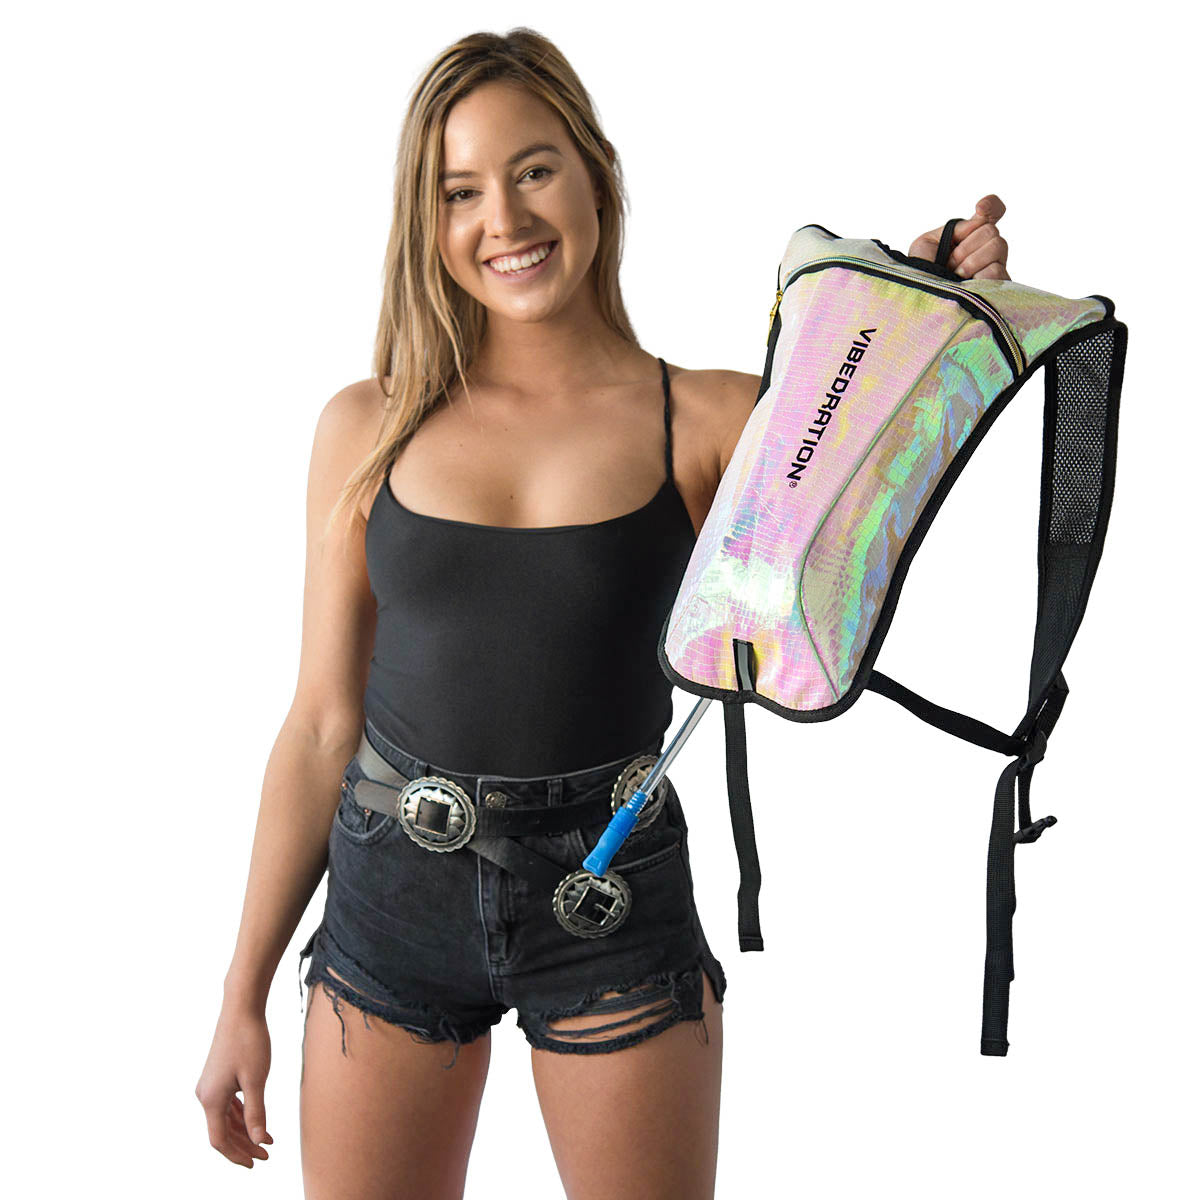 Model holding Vegan Leather hydration pack